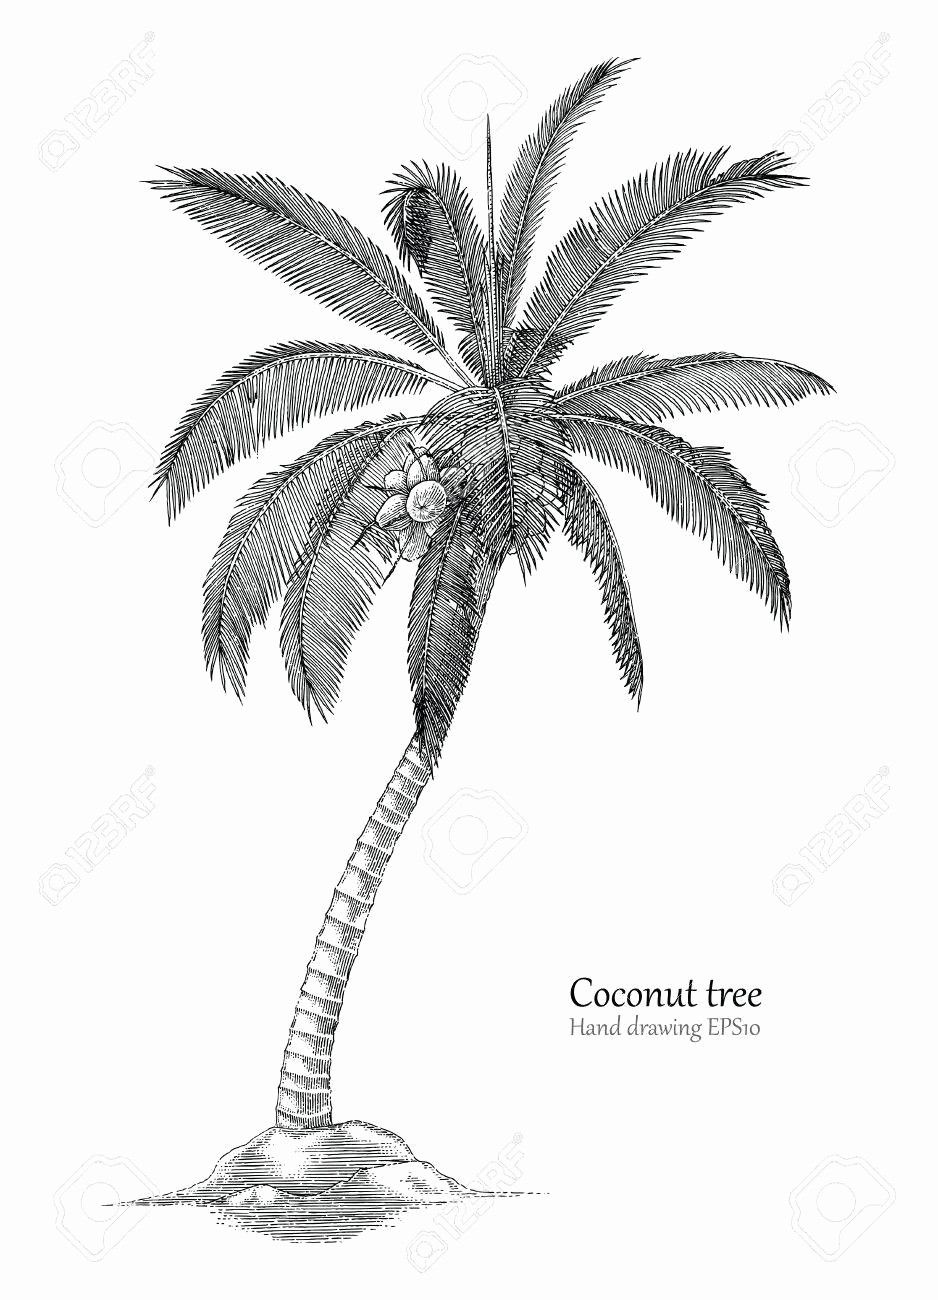 10+ Best For Coconut Tree Pencil Drawing Images